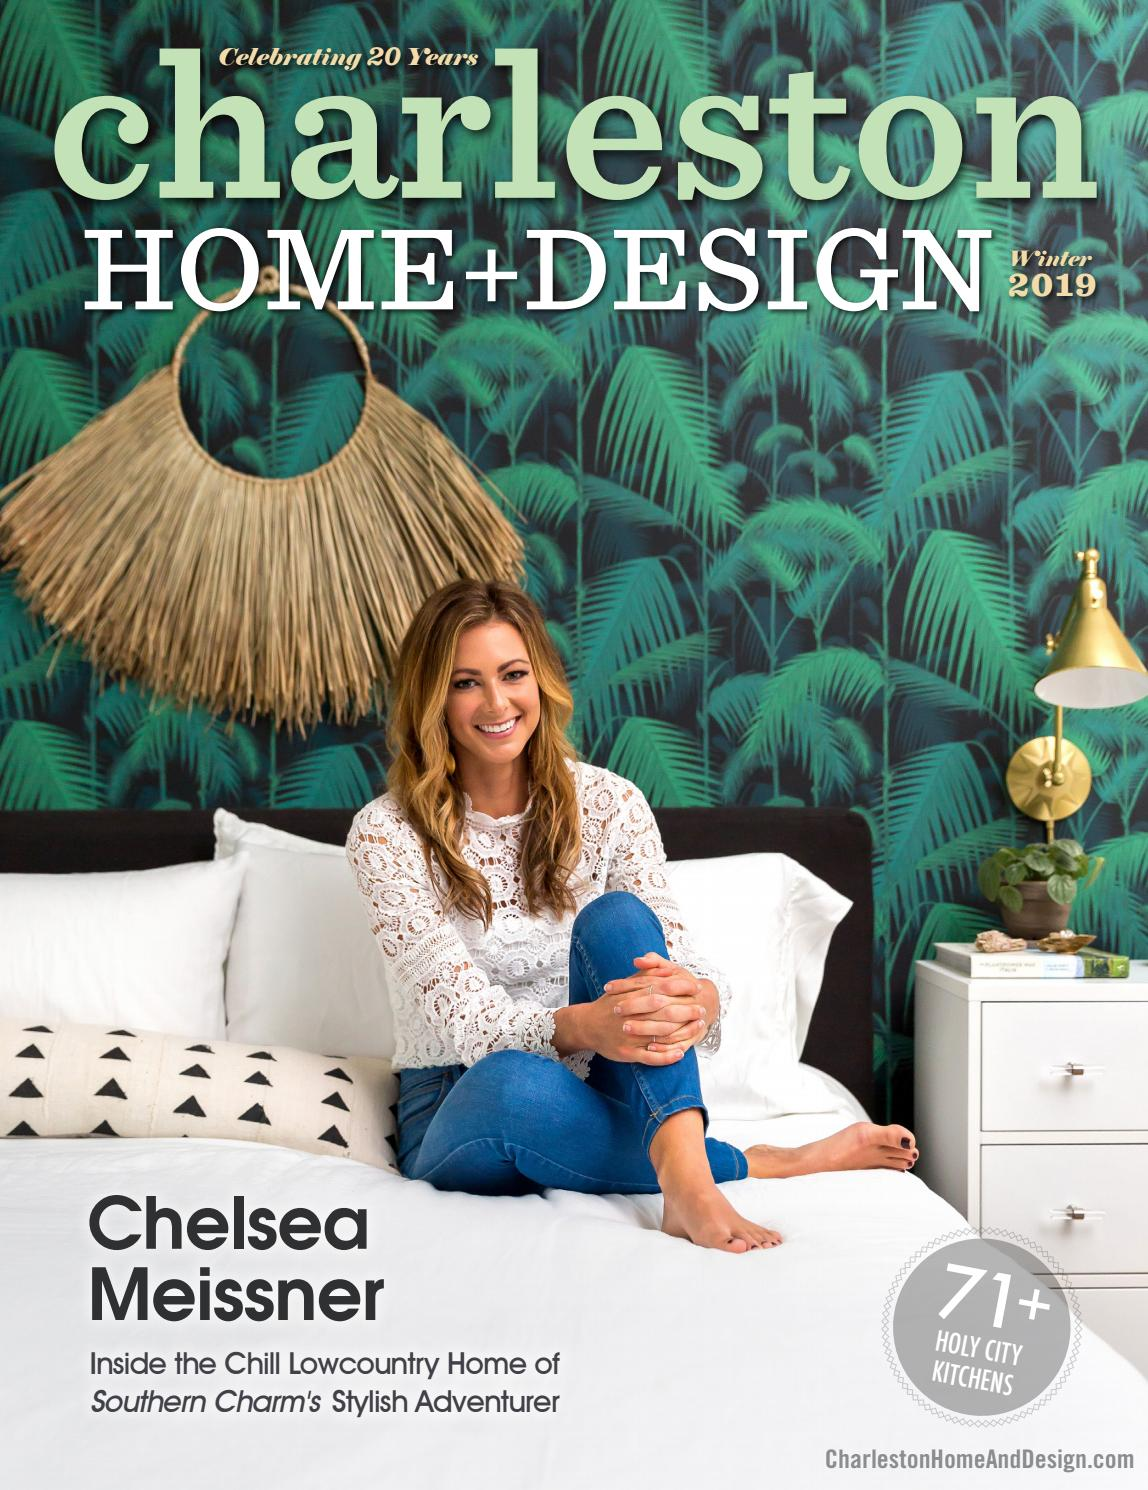 Chelsea Meissner by Charleston Home + Design Magazine - issuu on orlando area house plans, nature house plans, beach house plans, palmetto house plans, art house plans, tidewater house plans, pendleton house plans, bluffton house plans, soul food house plans, carolina house plans, english house plans, row house plans, historic house plans, cottage house plans, country house plans, united states house plans, atlanta area house plans, charleston house plans, south house plans, southwestern house plans,